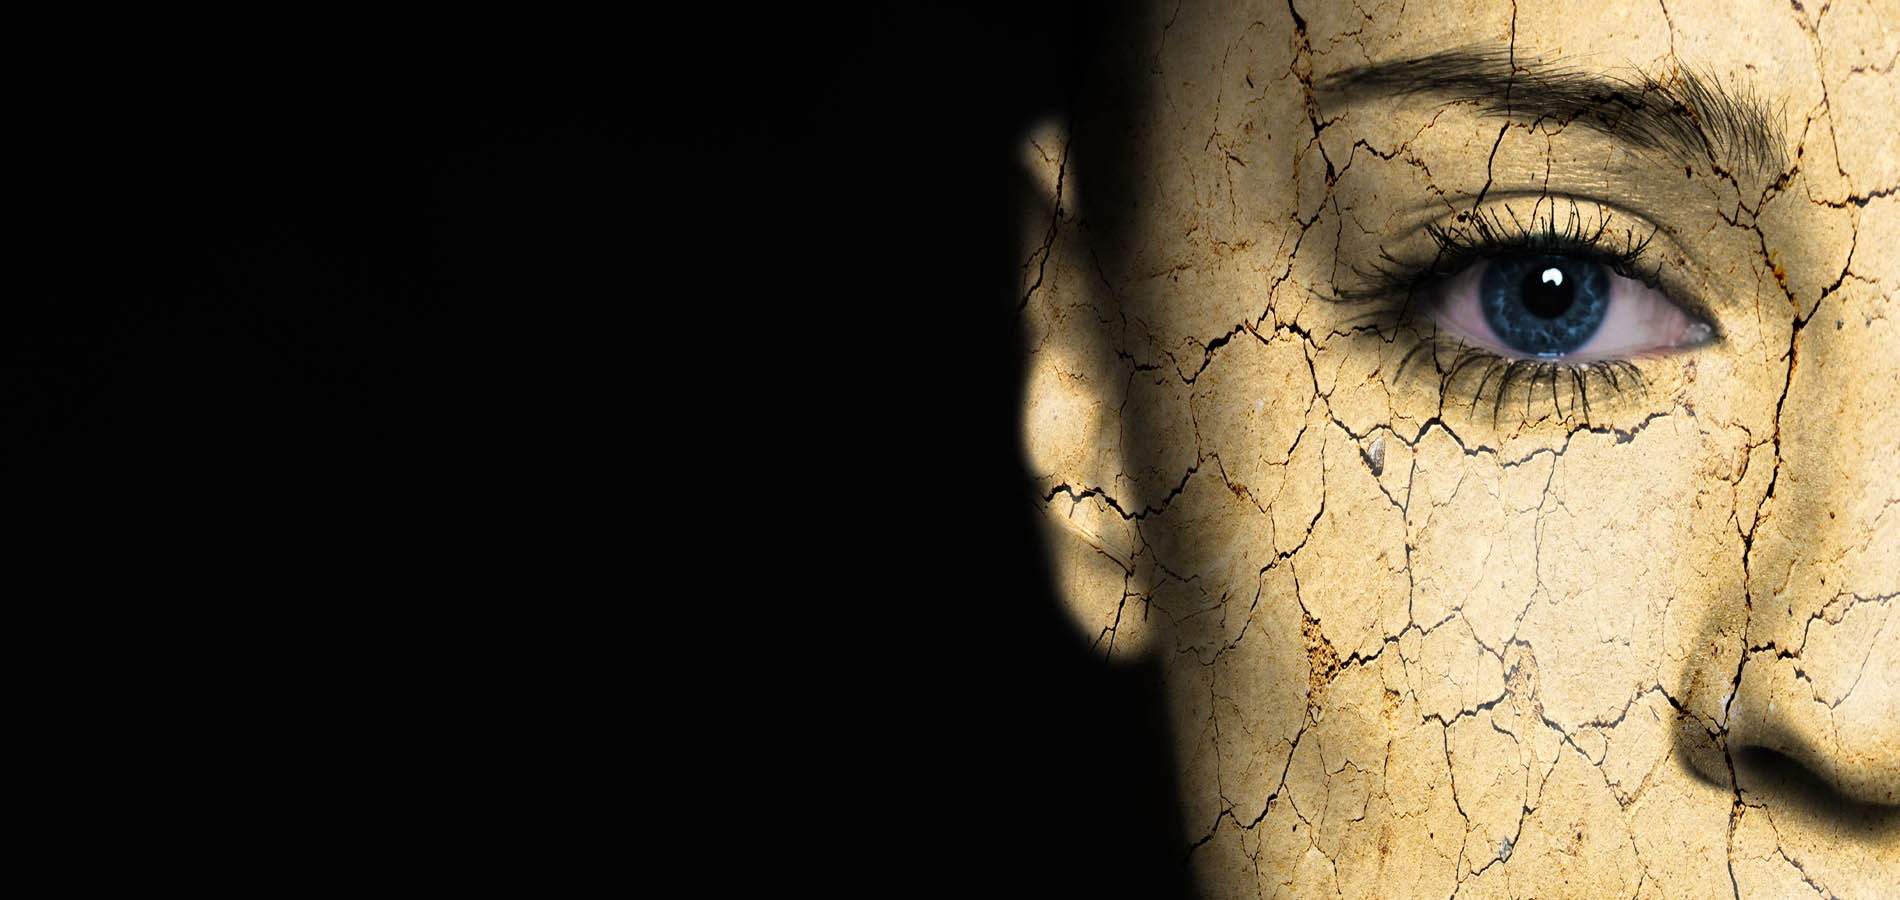 Woman's half face with superimposed cracked earth on skin to give the effect of very rough skin needing exfoliation.